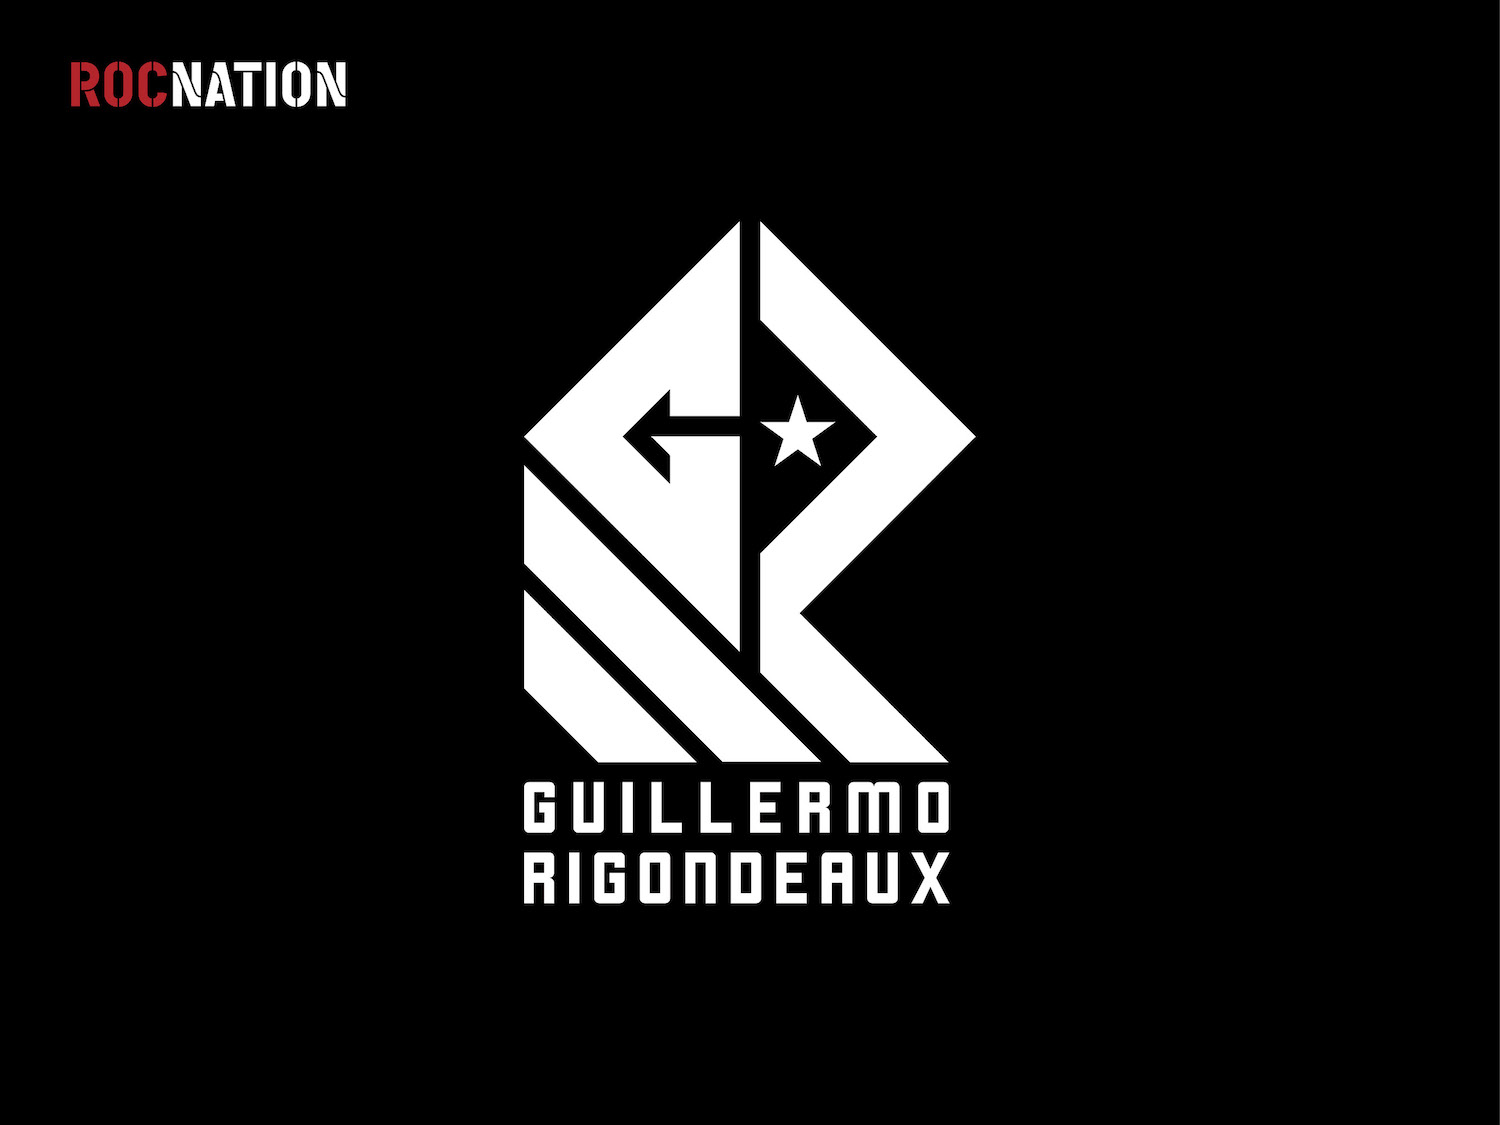 Guillermo Rigondeaux Rocnation athlete logo design